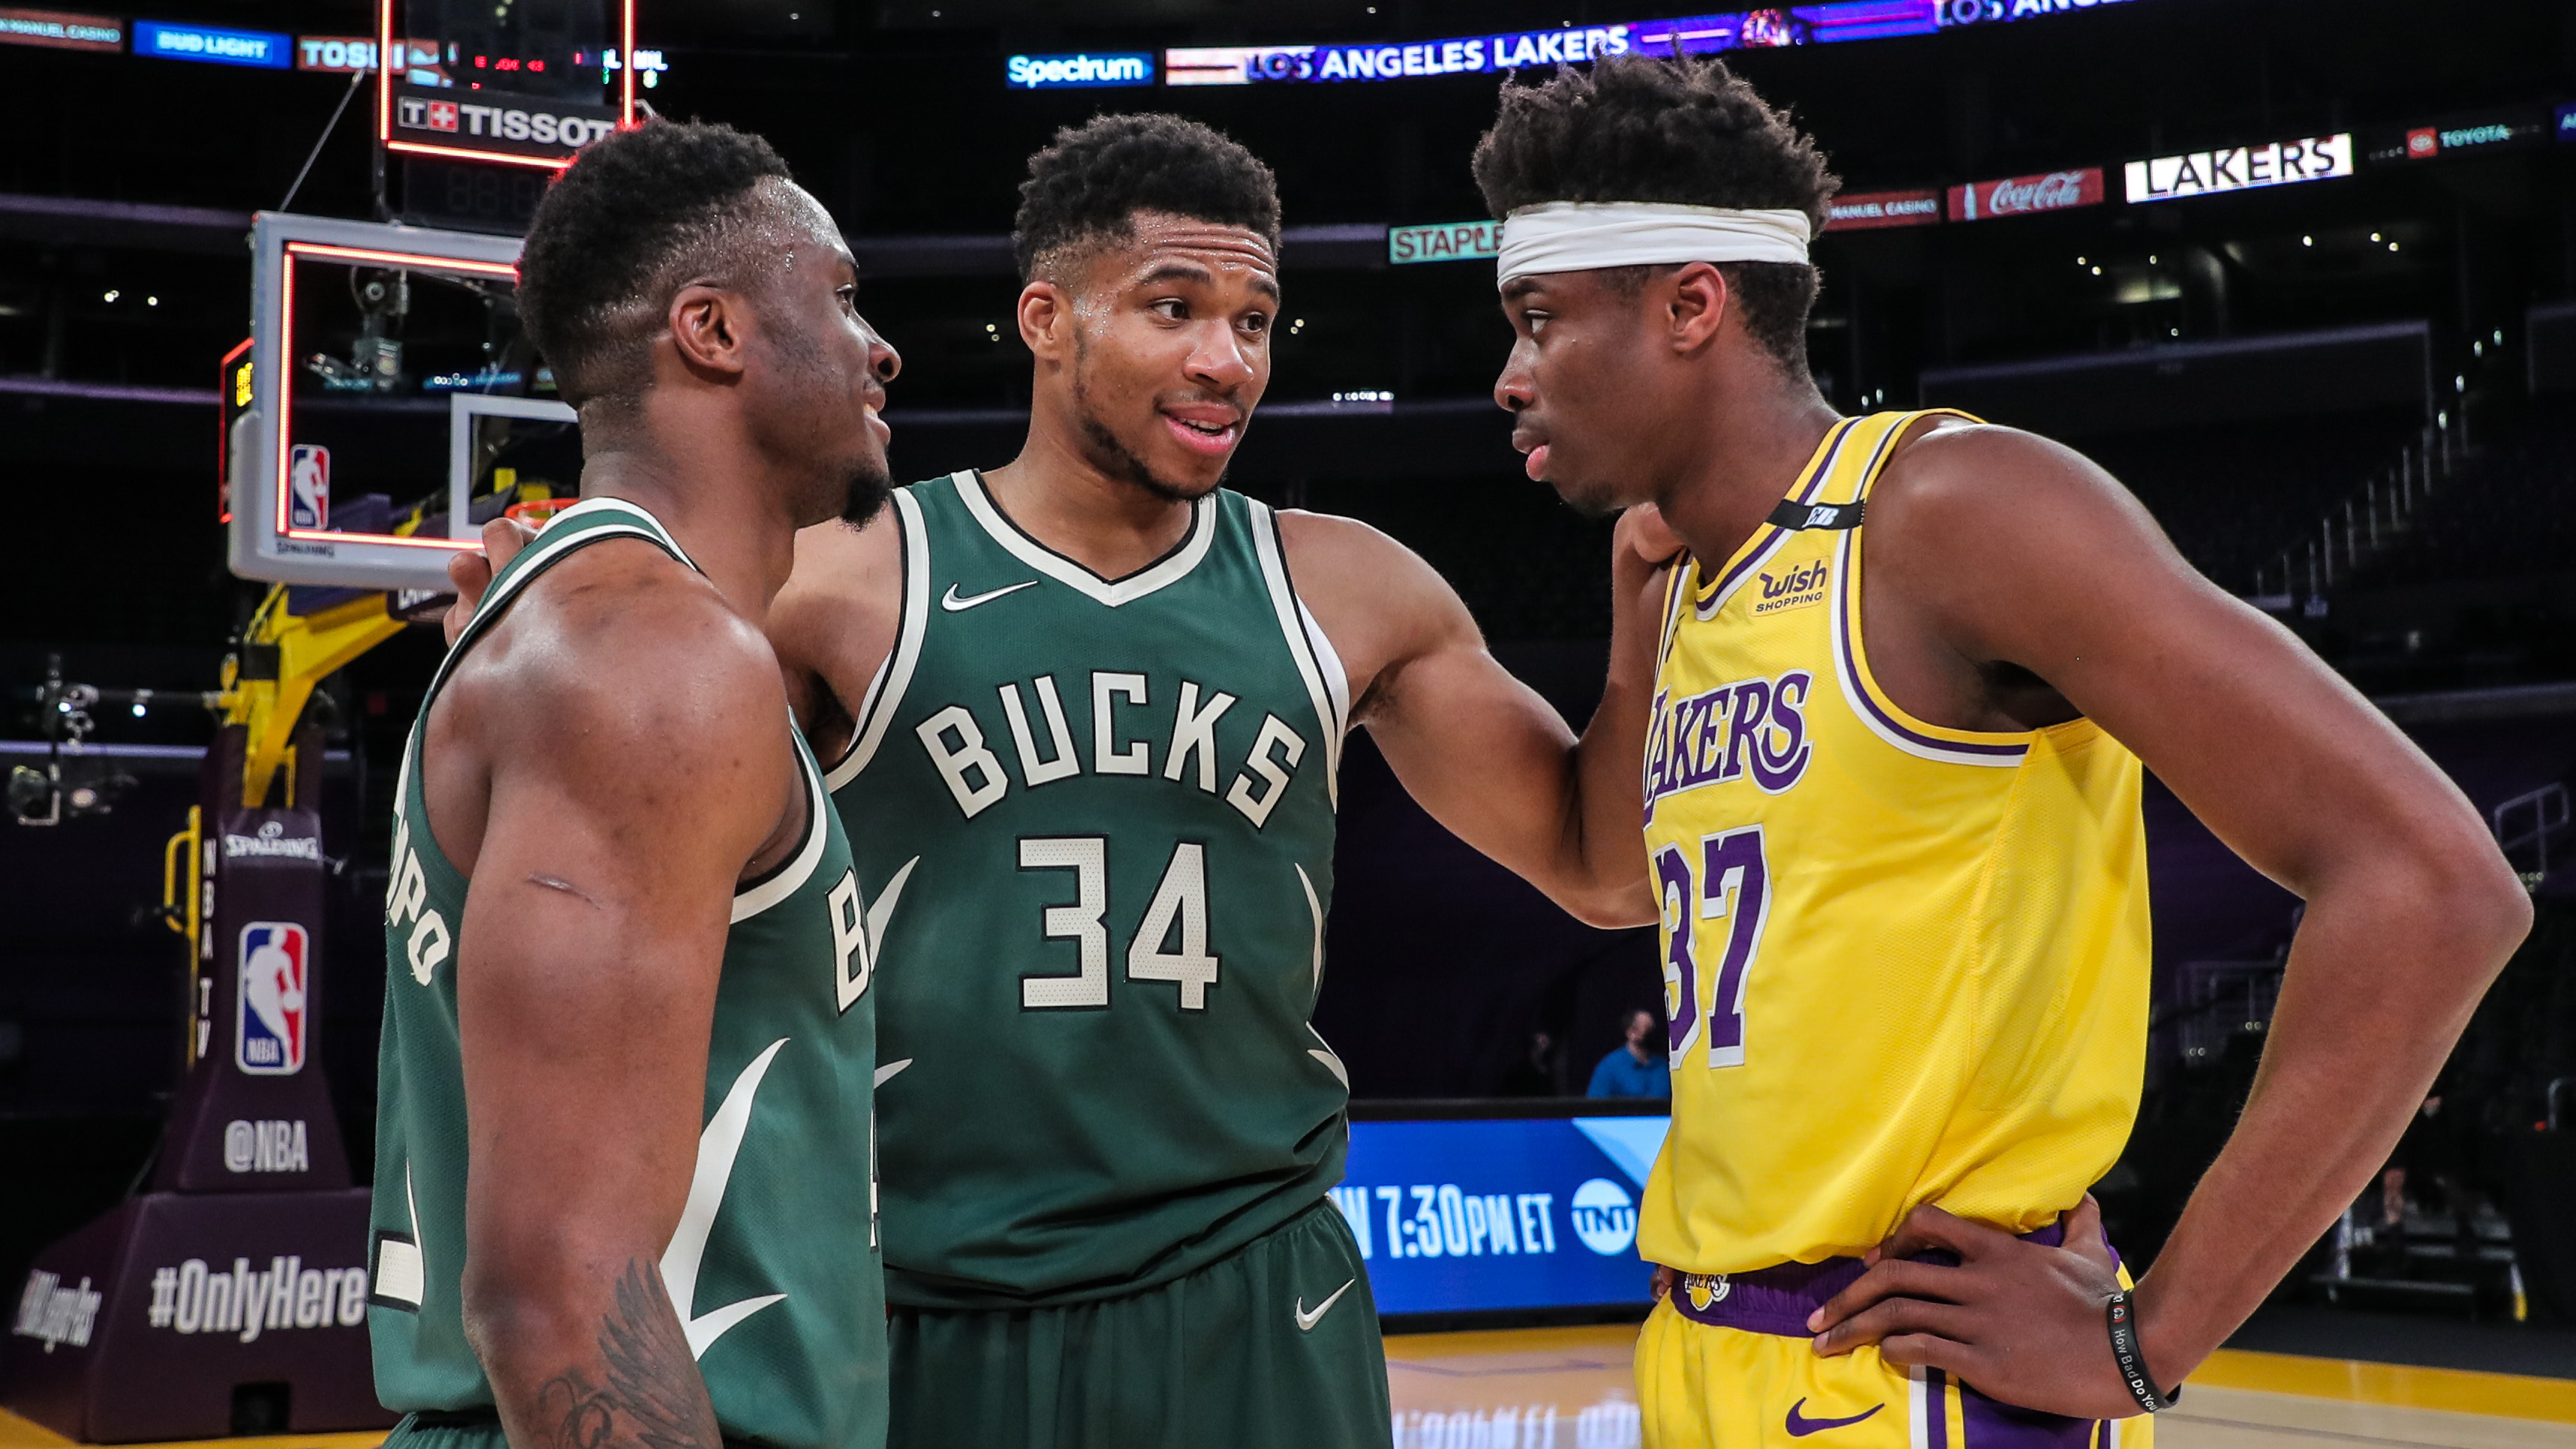 All-Access: Bucks Beat Lakers In LA, Giannis Antetokounmpo's Favorite NBA Moment